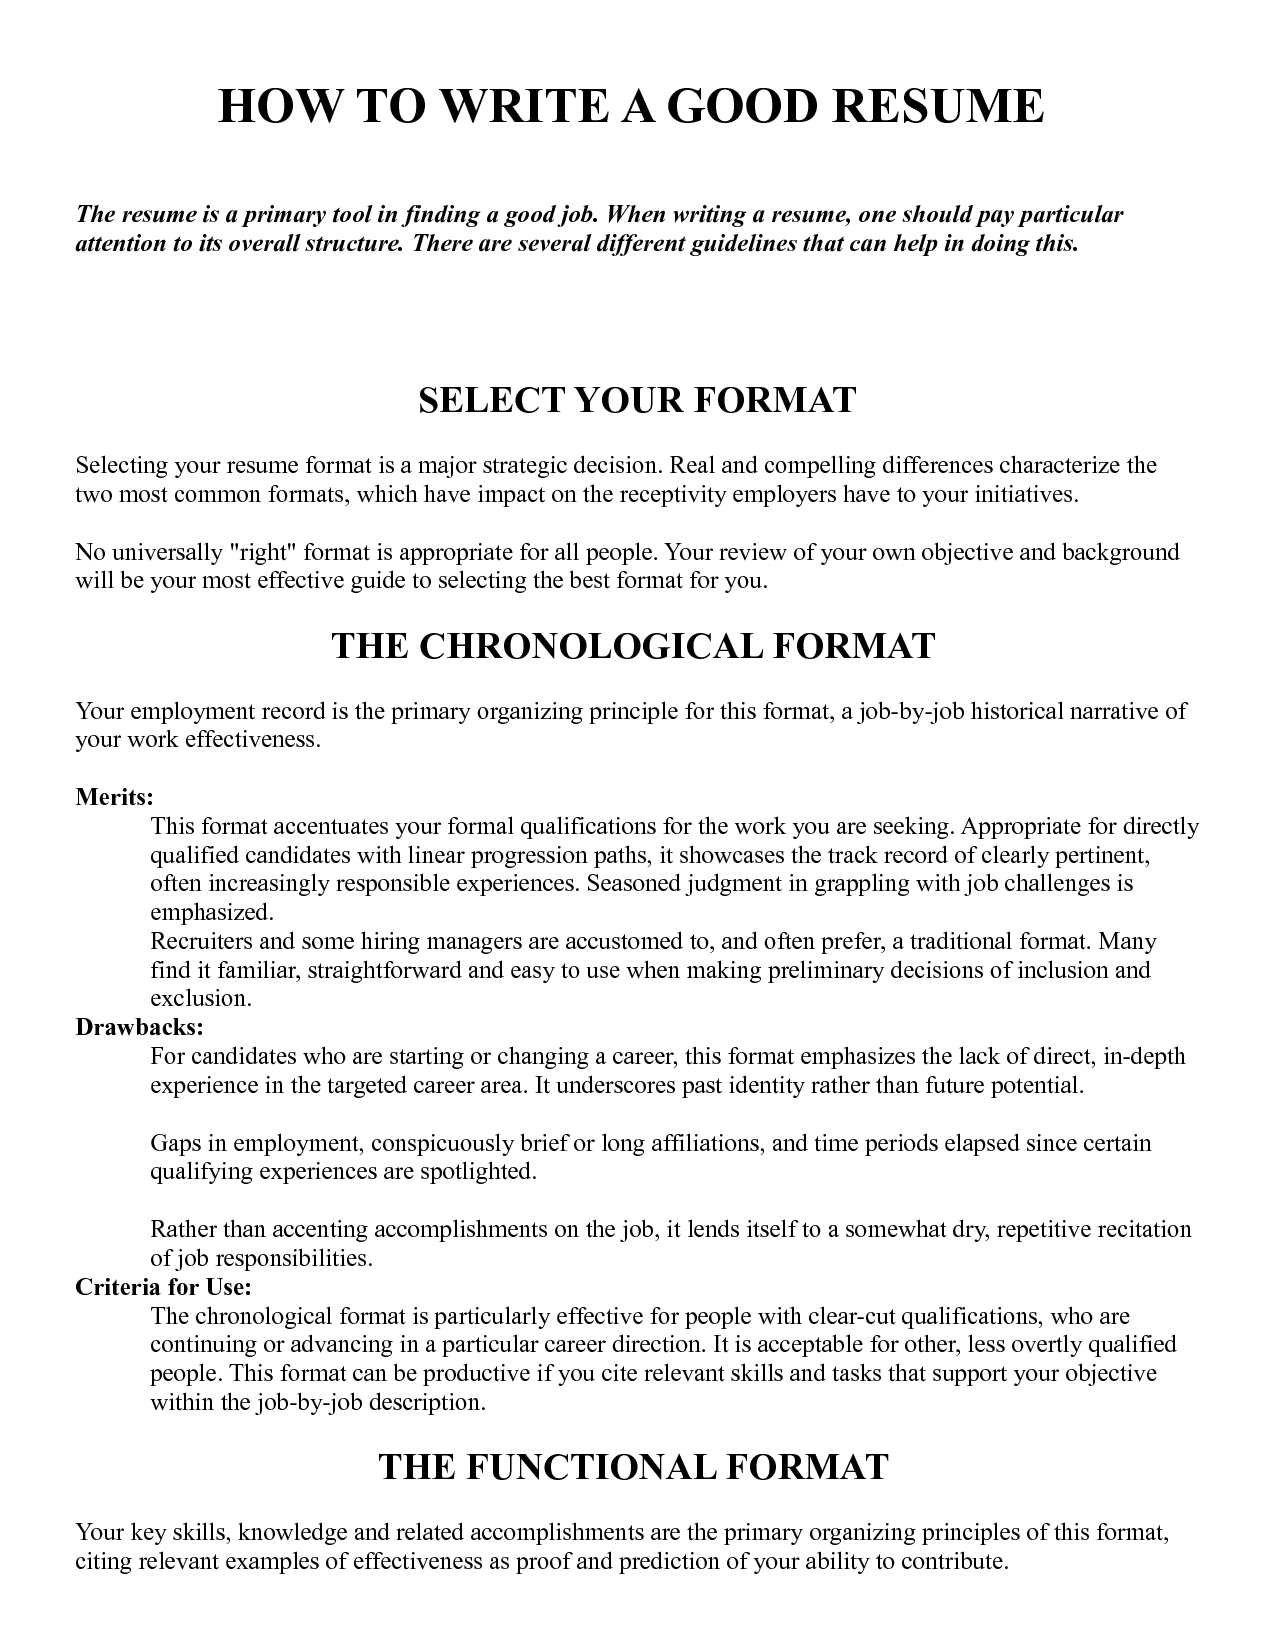 How to write a good resume (pays attention to its overall structure ...